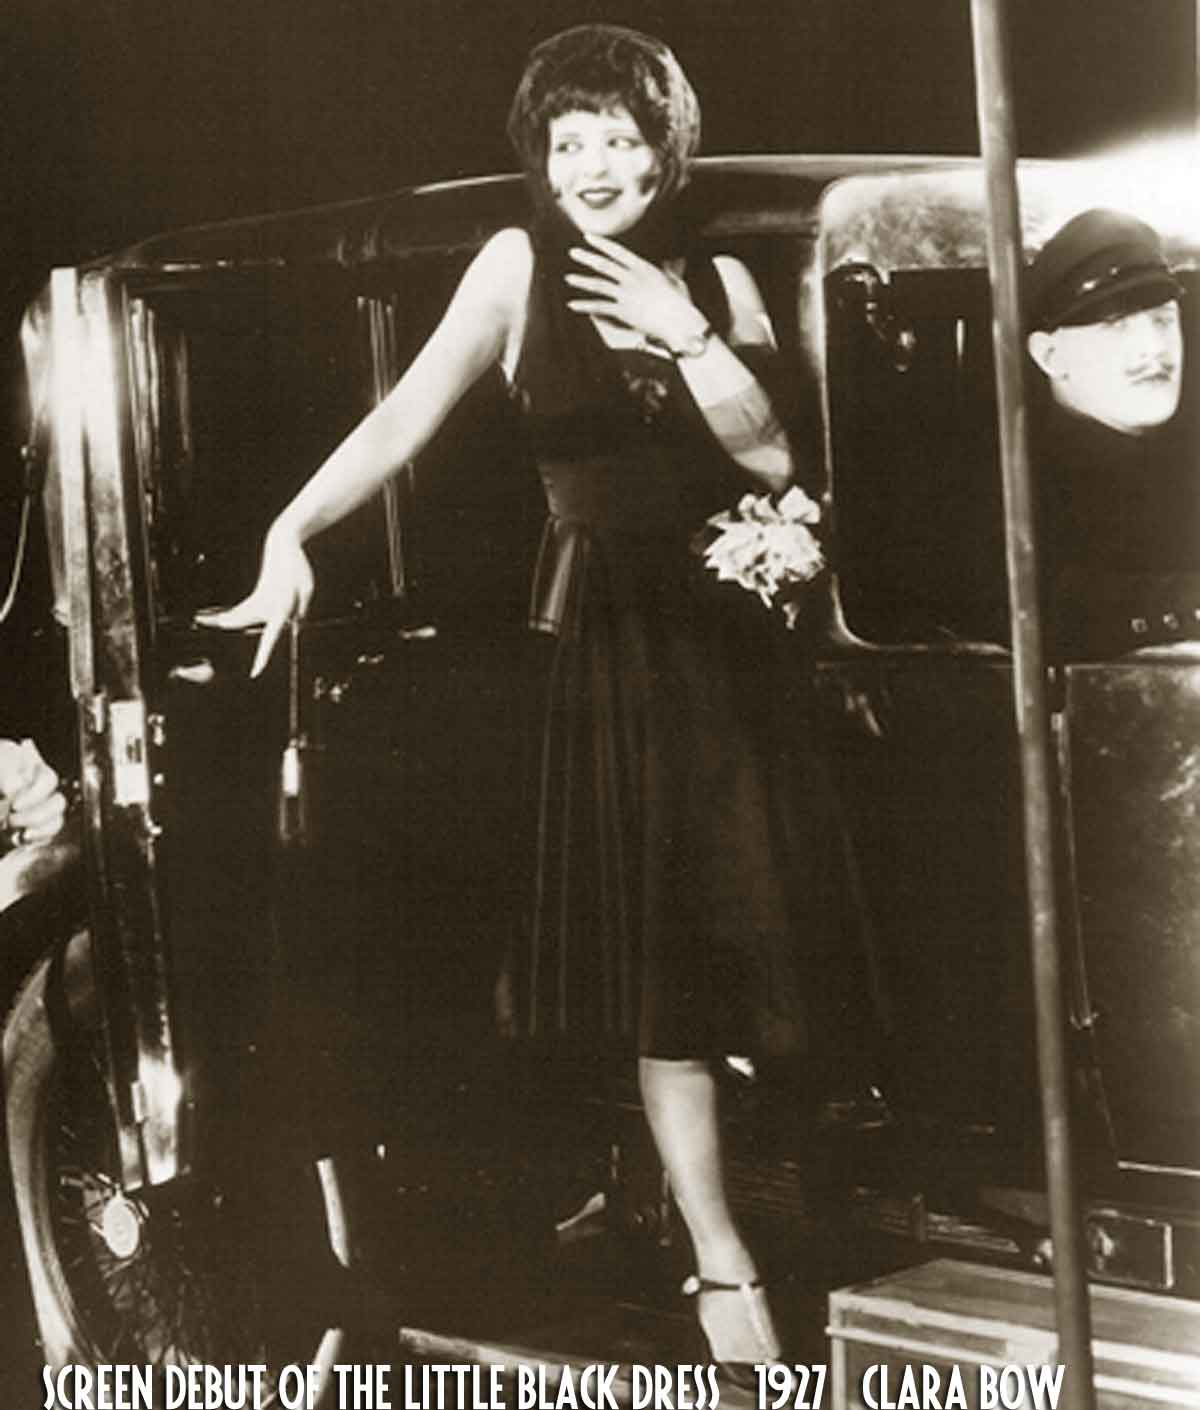 1920s fashion - screen-debut-of-the-little-black-dress-1927-clara-bow